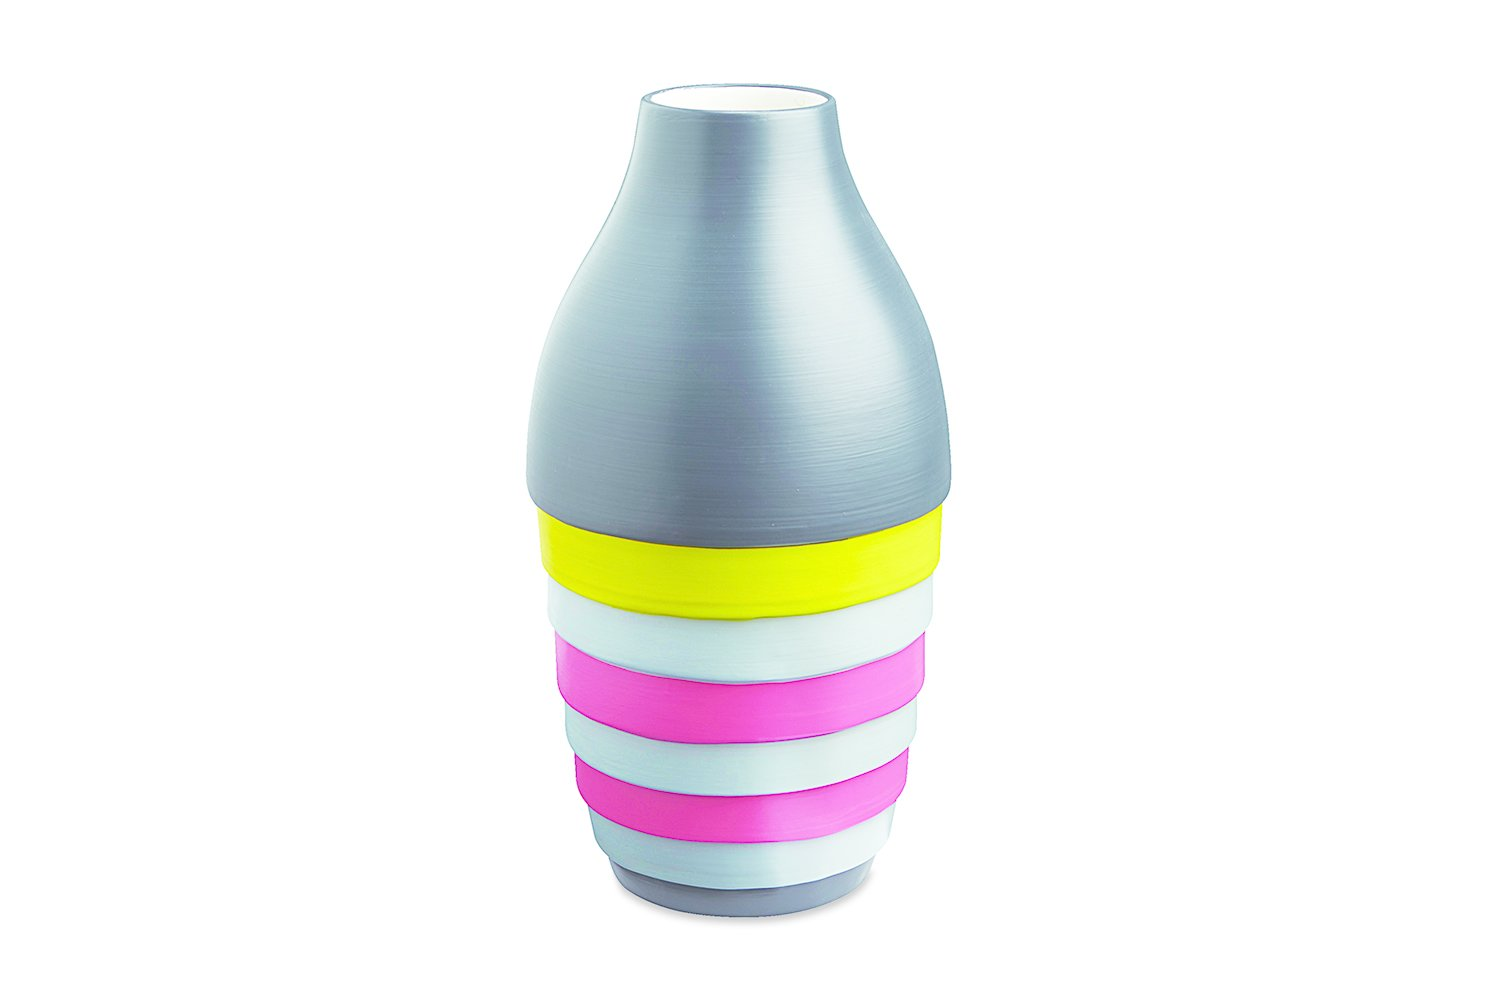 """Xystum Color Block vase by CB2. Postmodernism appropriates classical cues in a Pop-y, contemporary manner. Therefore, this vase's name, a Greek architectural term loosely translated as """"portico,"""" is apropos.  Search """"milan 2010 in color"""" from Striking Memphis-Inspired Designs"""